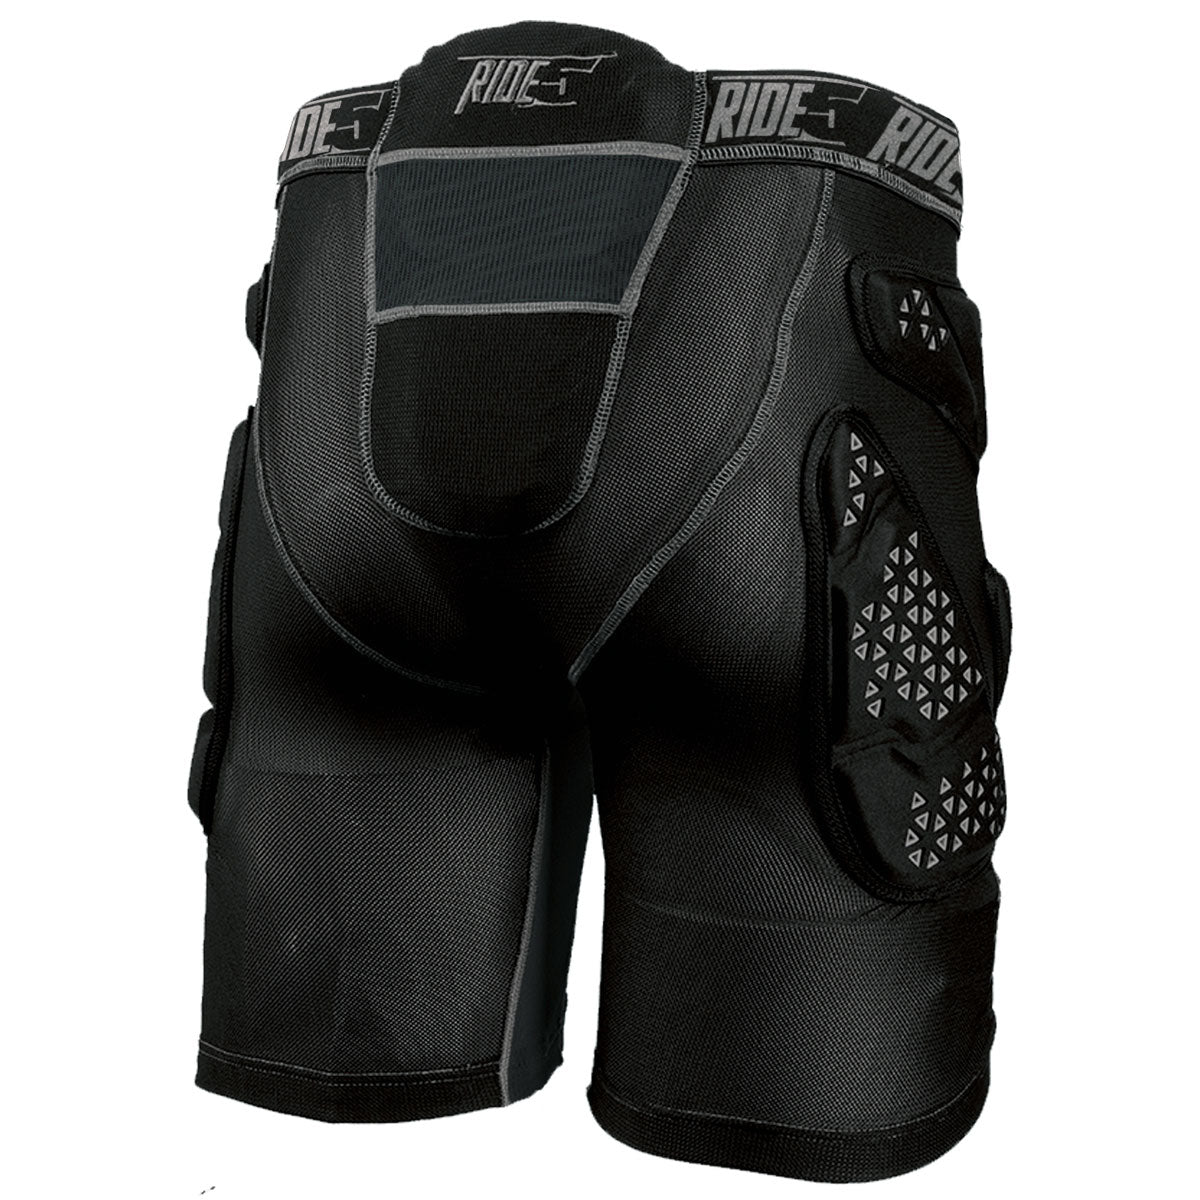 R-Mor Protection Riding Short